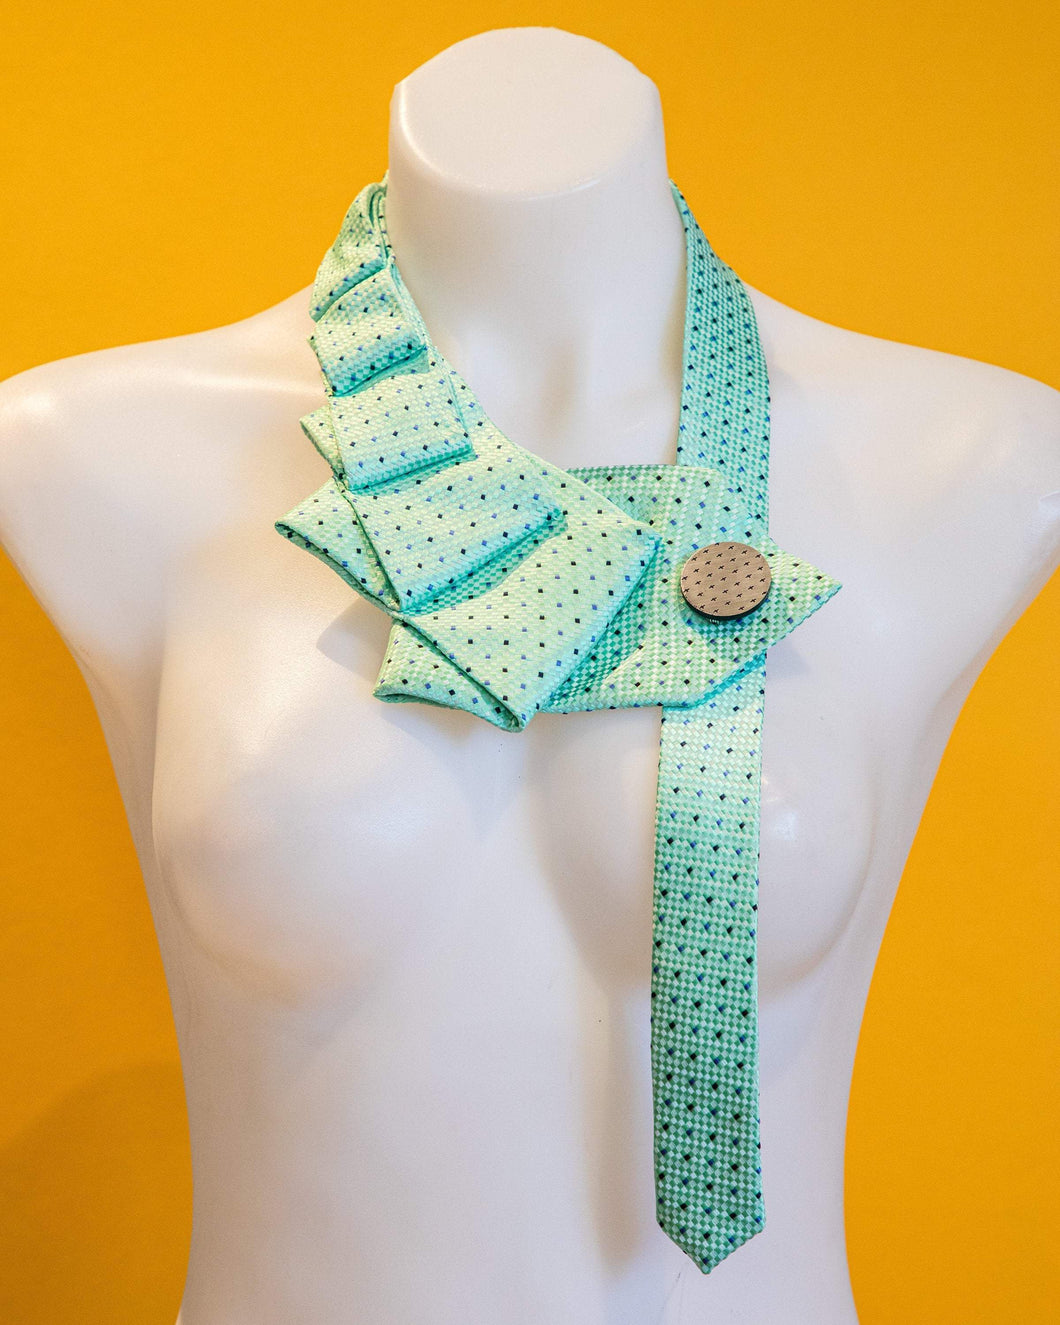 Accessories THE MINT UPCYCLED NECKLACE THE MINT | Mint Green + Blue Upcycled Statement Necklace | MAINE+MARA Shop